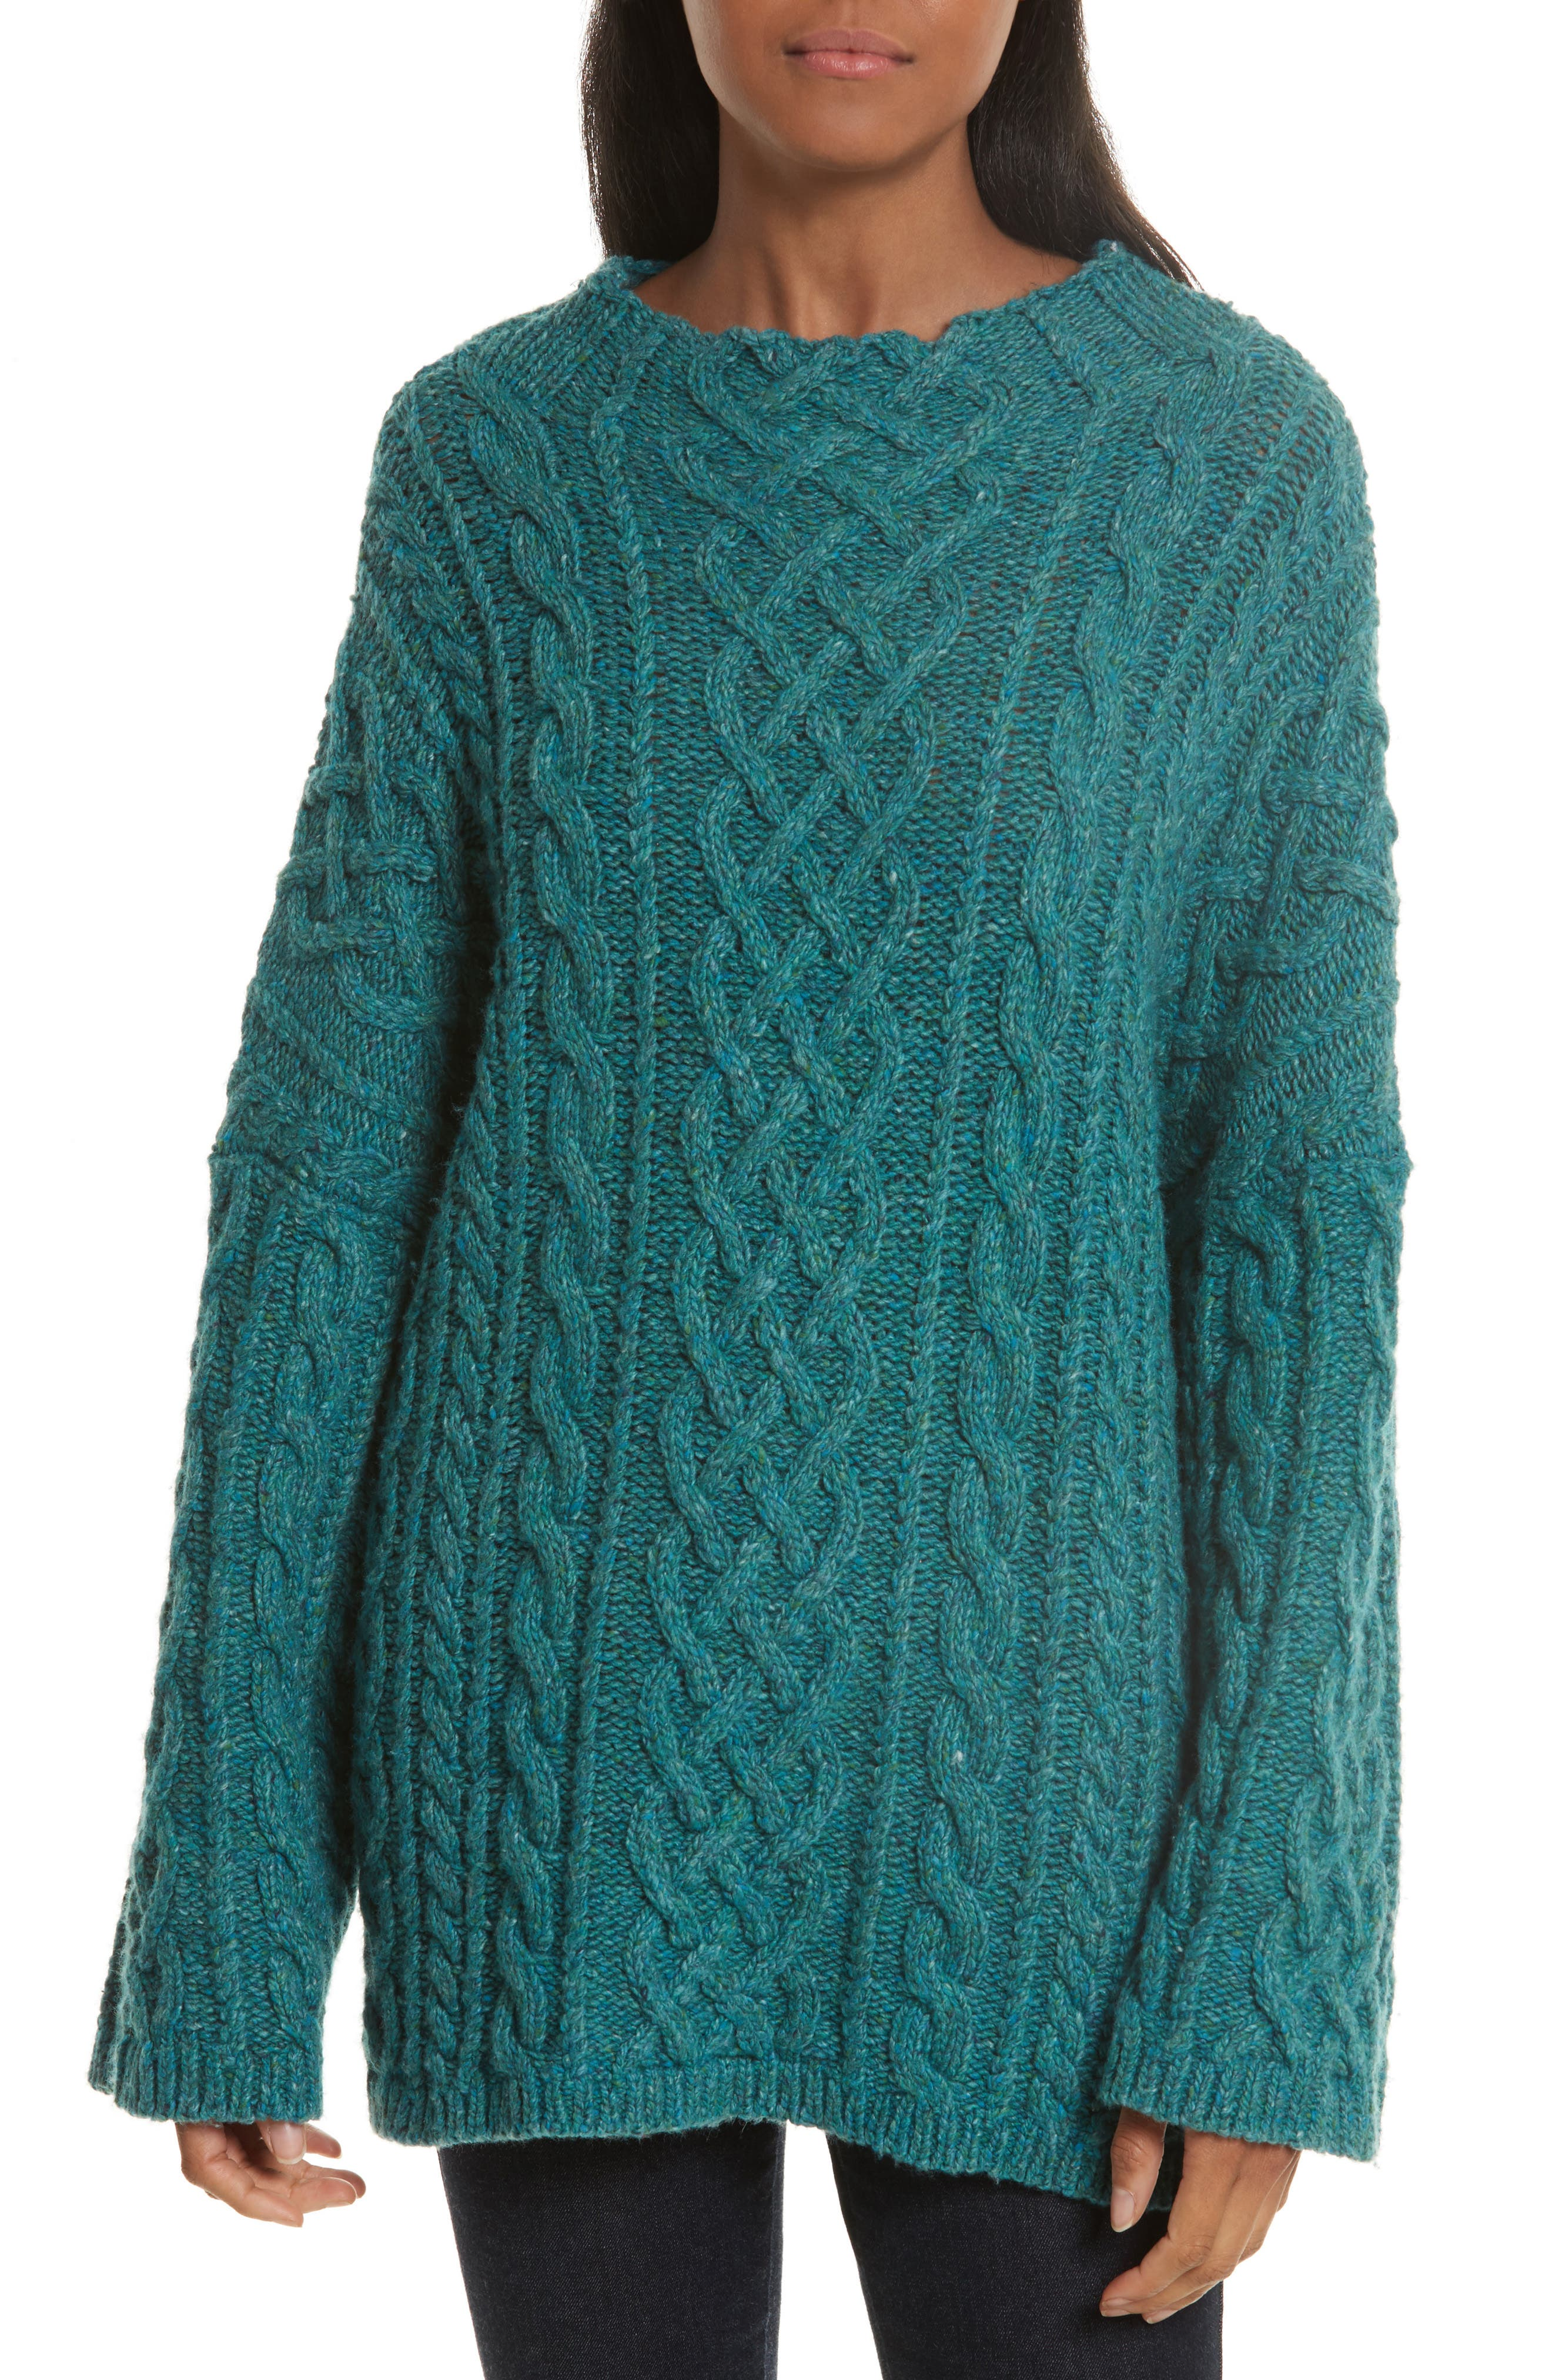 Milly Oversize Fisherman Cable-Knit Sweater